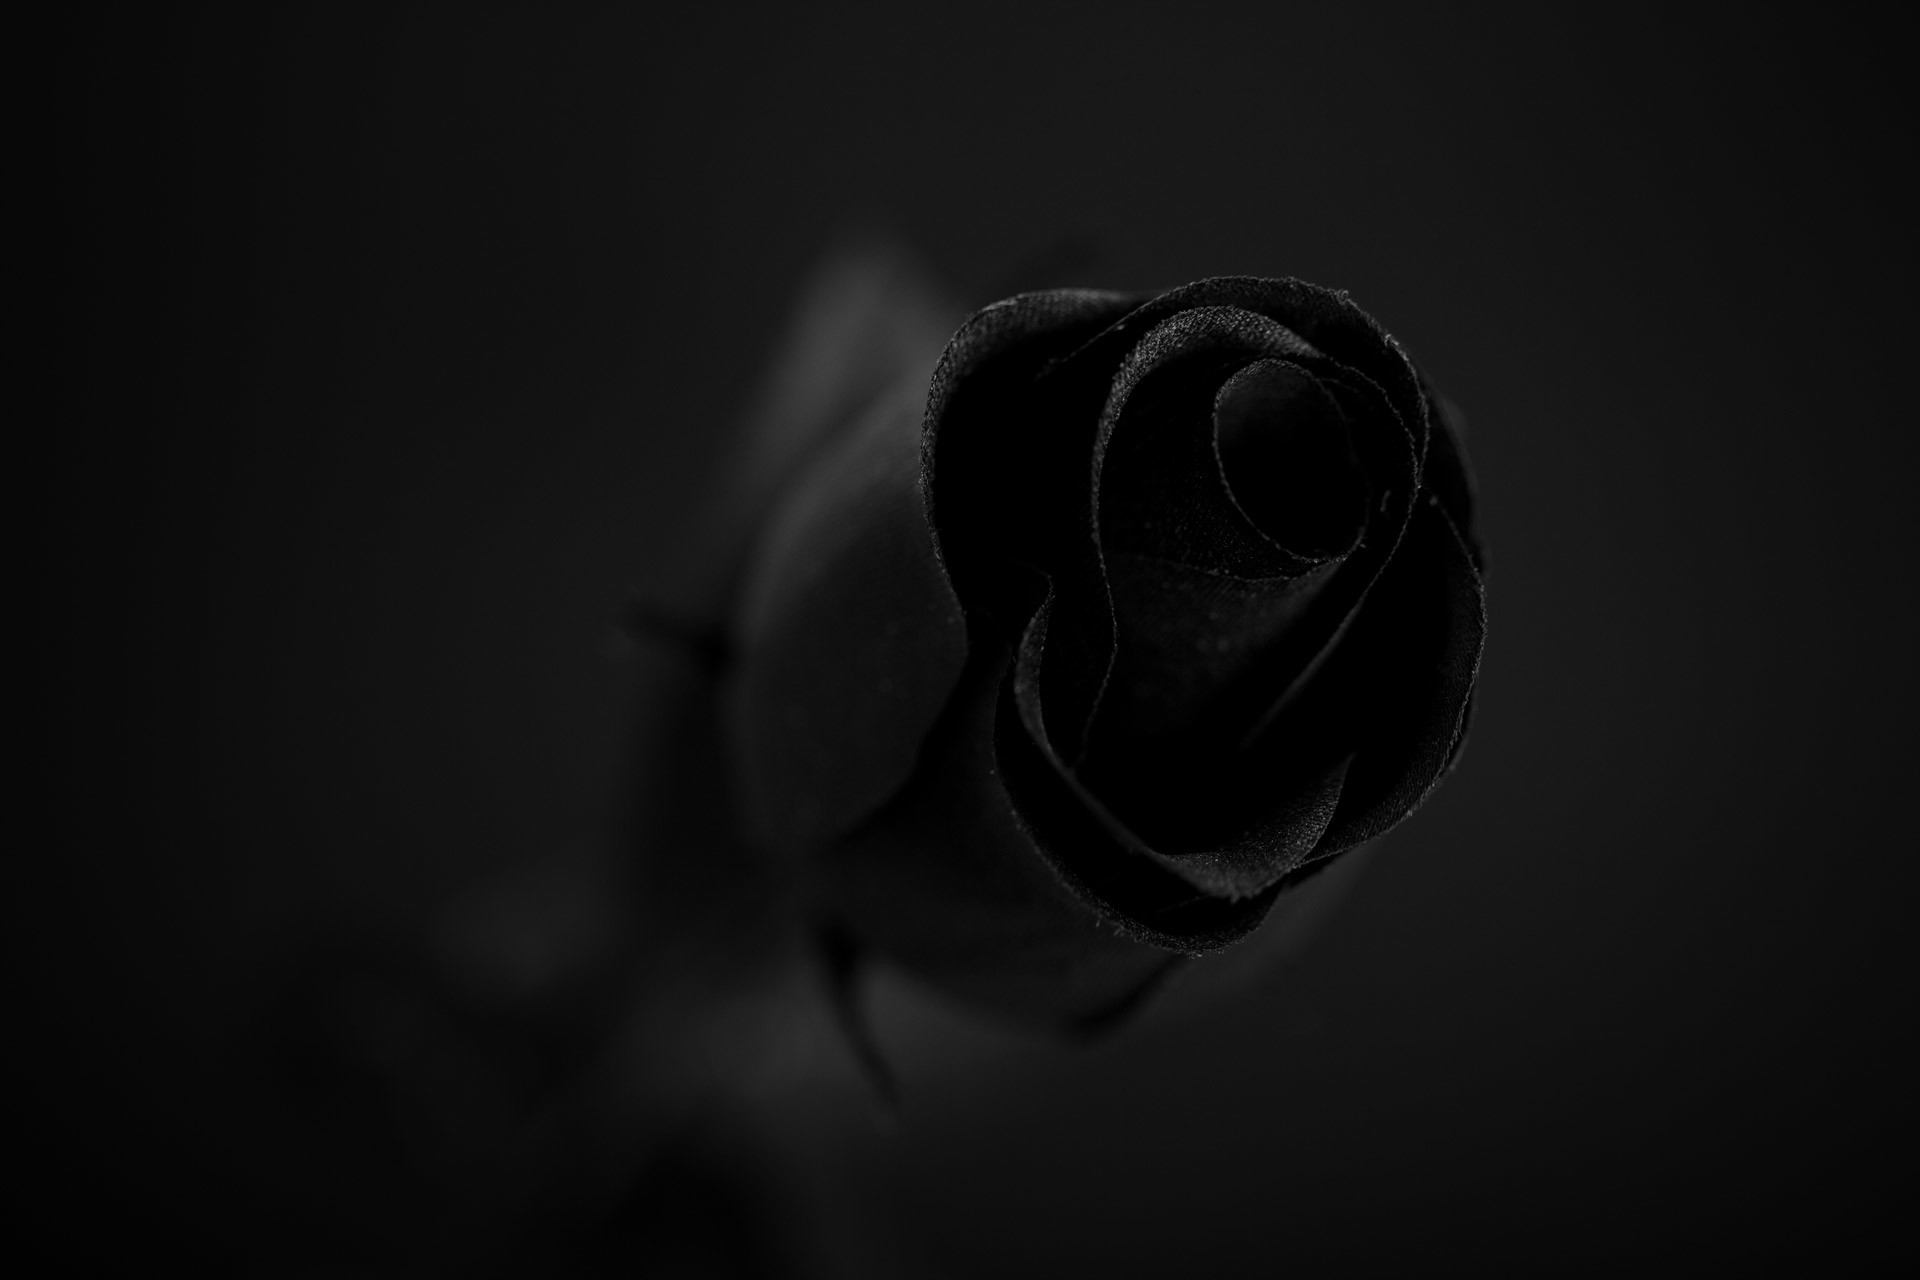 Black Roses Wallpaper 64 Images